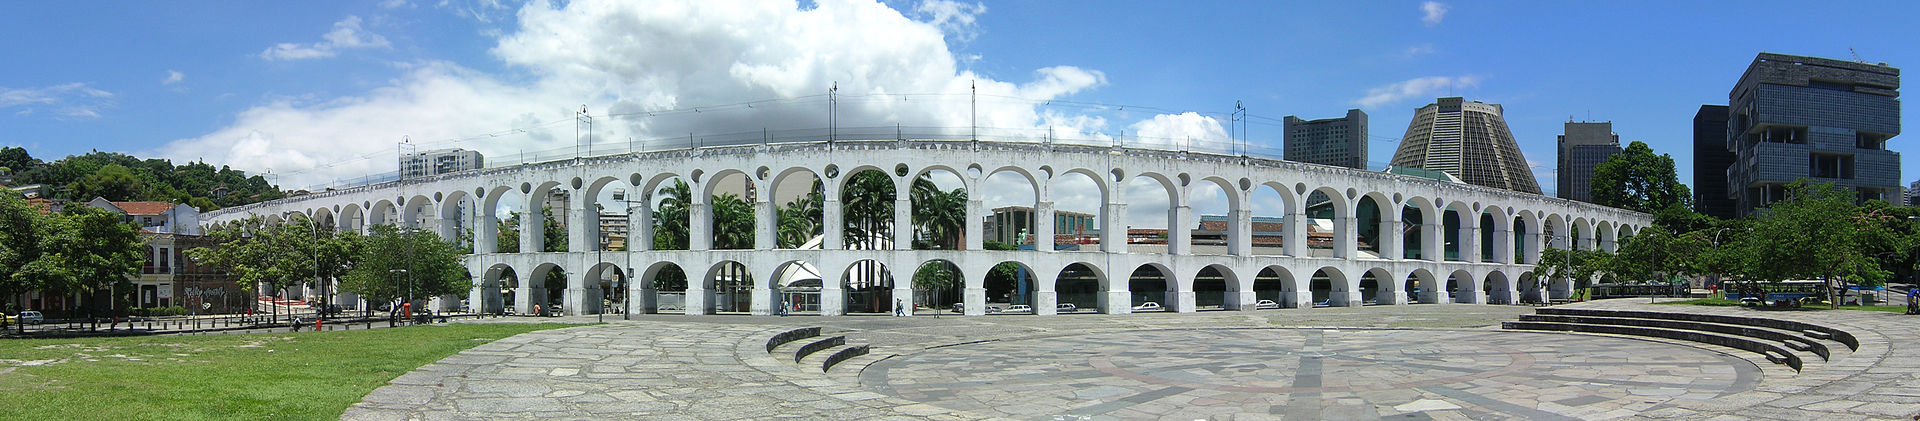 Arches of Lapa in Rio Celebrated its 80th Anniversary as Brazilian Cultural Heritage